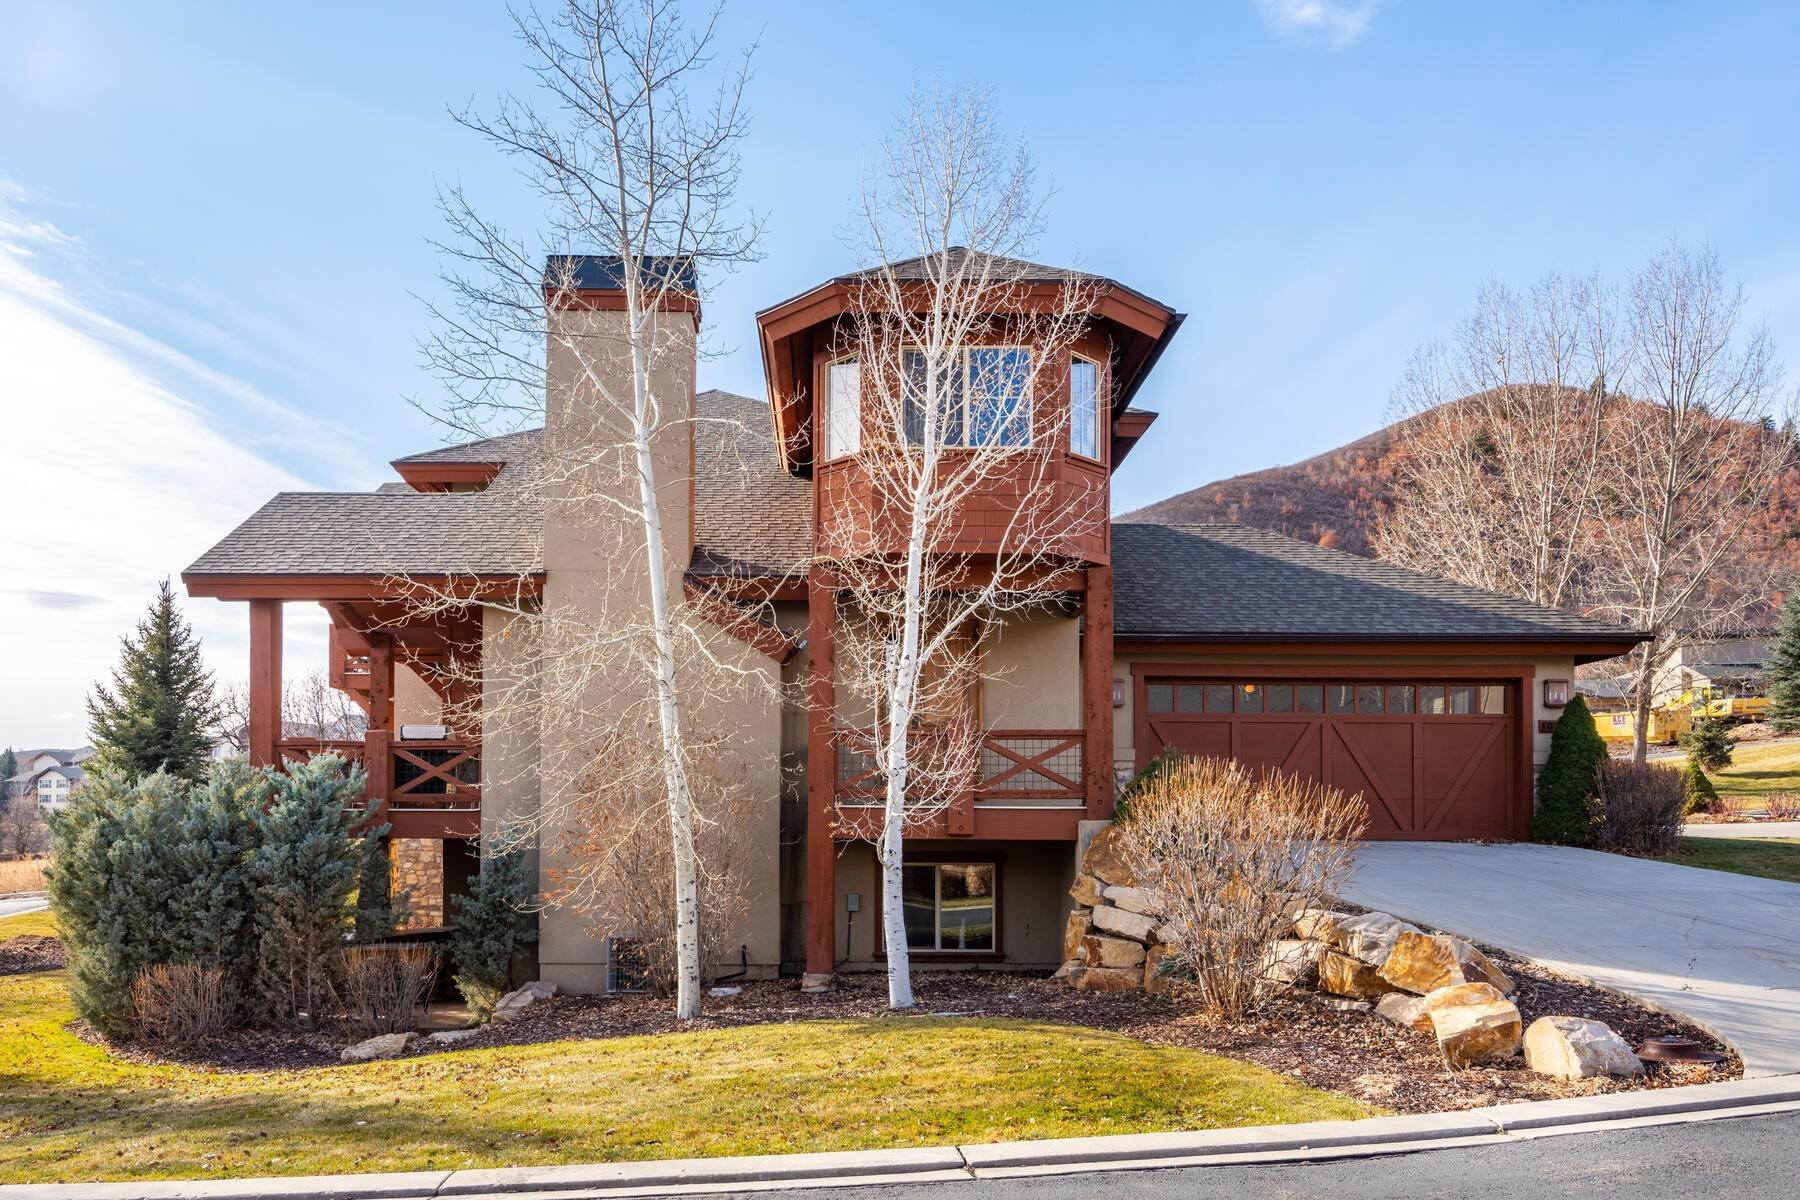 Single Family Homes for Sale at Coveted Turnberry Home in Midway 1075 N Turnberry Court Midway, Utah 84049 United States